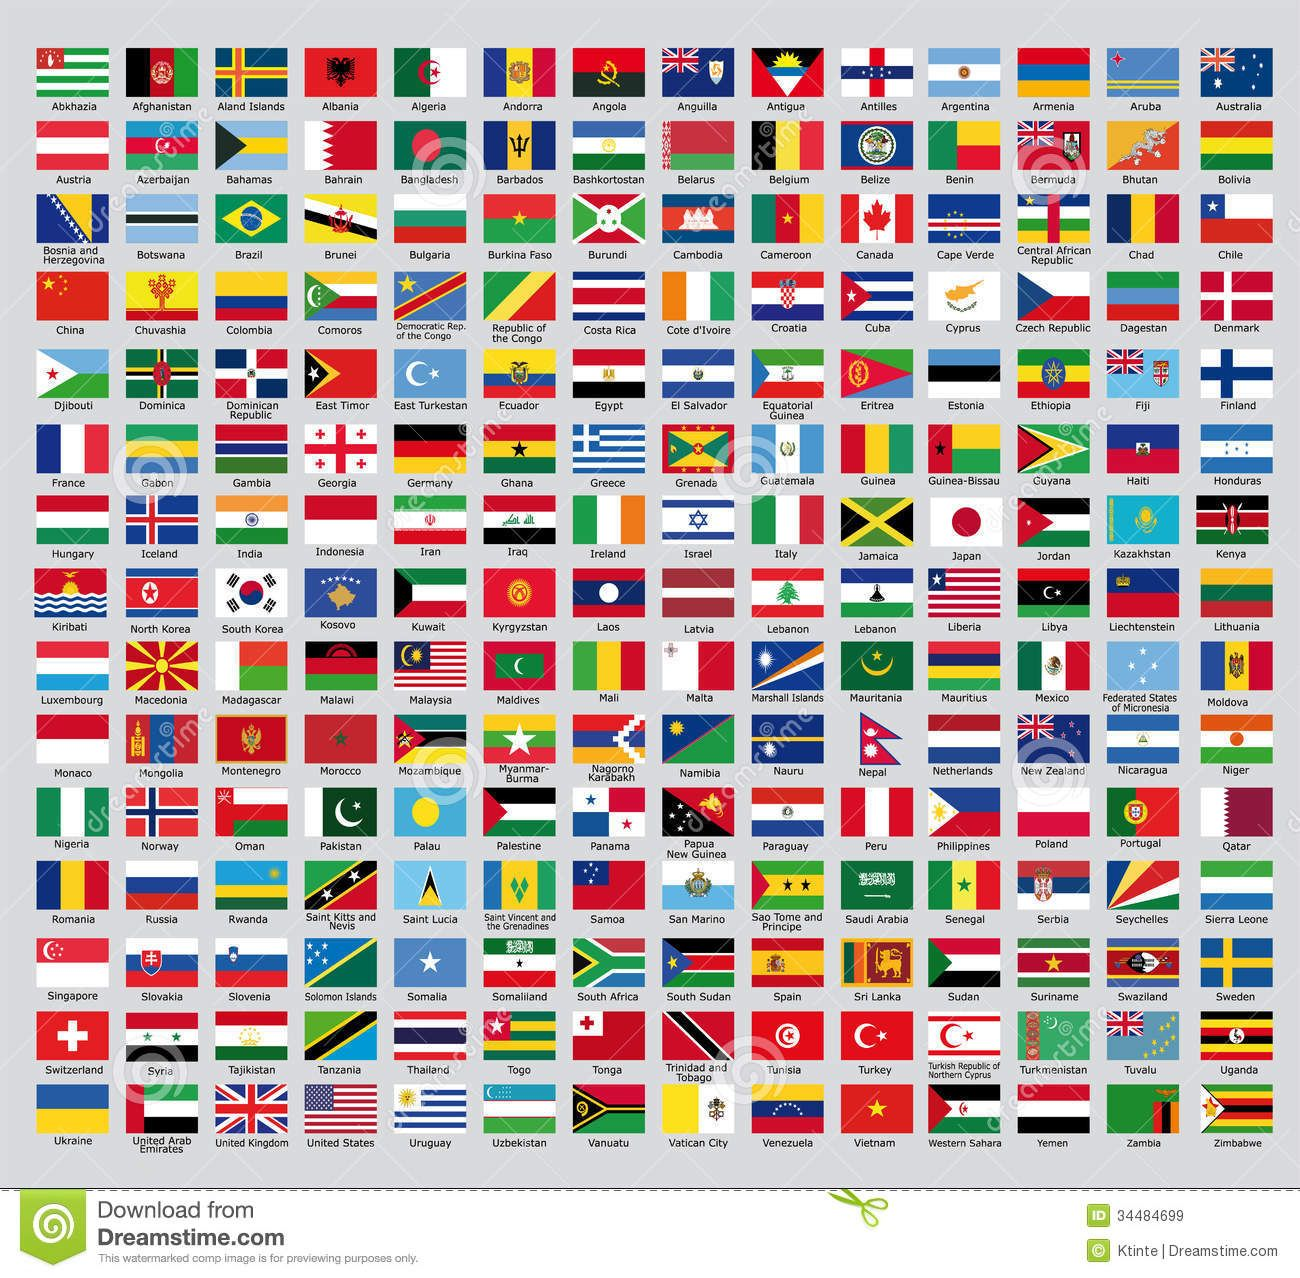 All The Flags Of The World And Their Names Official Country Flags Flags Of The World World Flags With Names World Country Flags